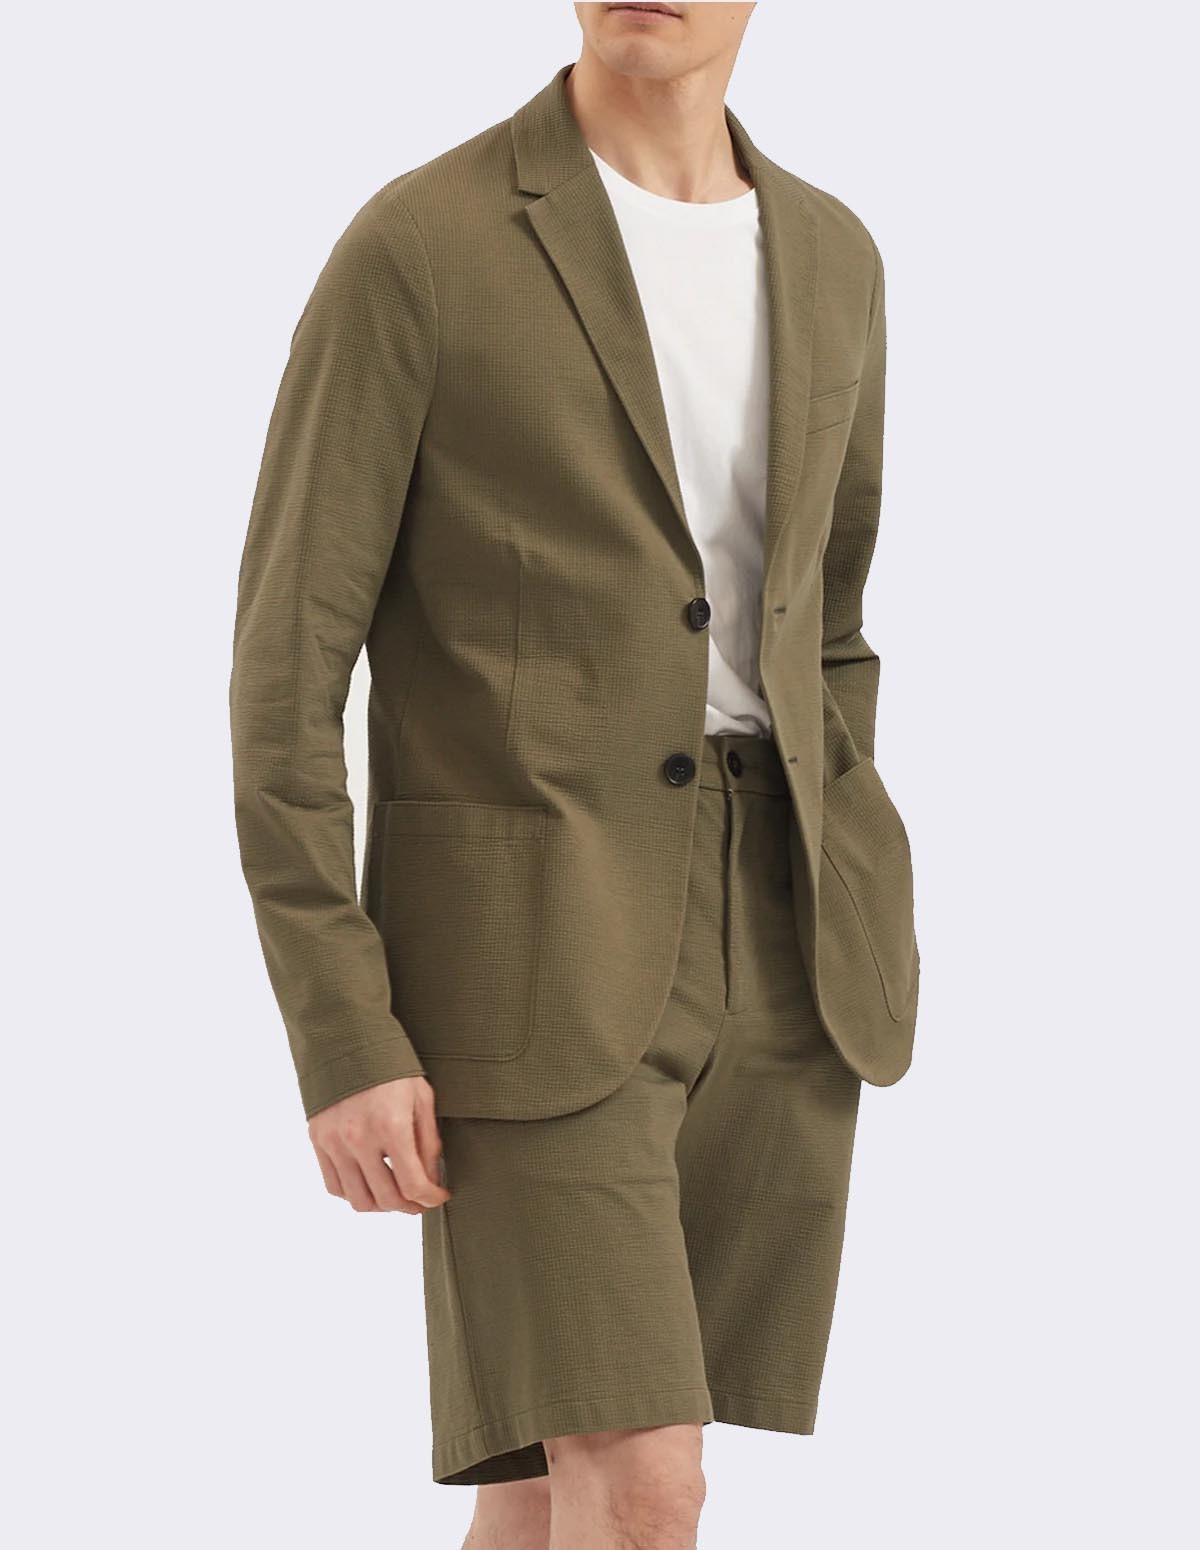 Hwl Men 2b Sartorial - MILITARY GREEN